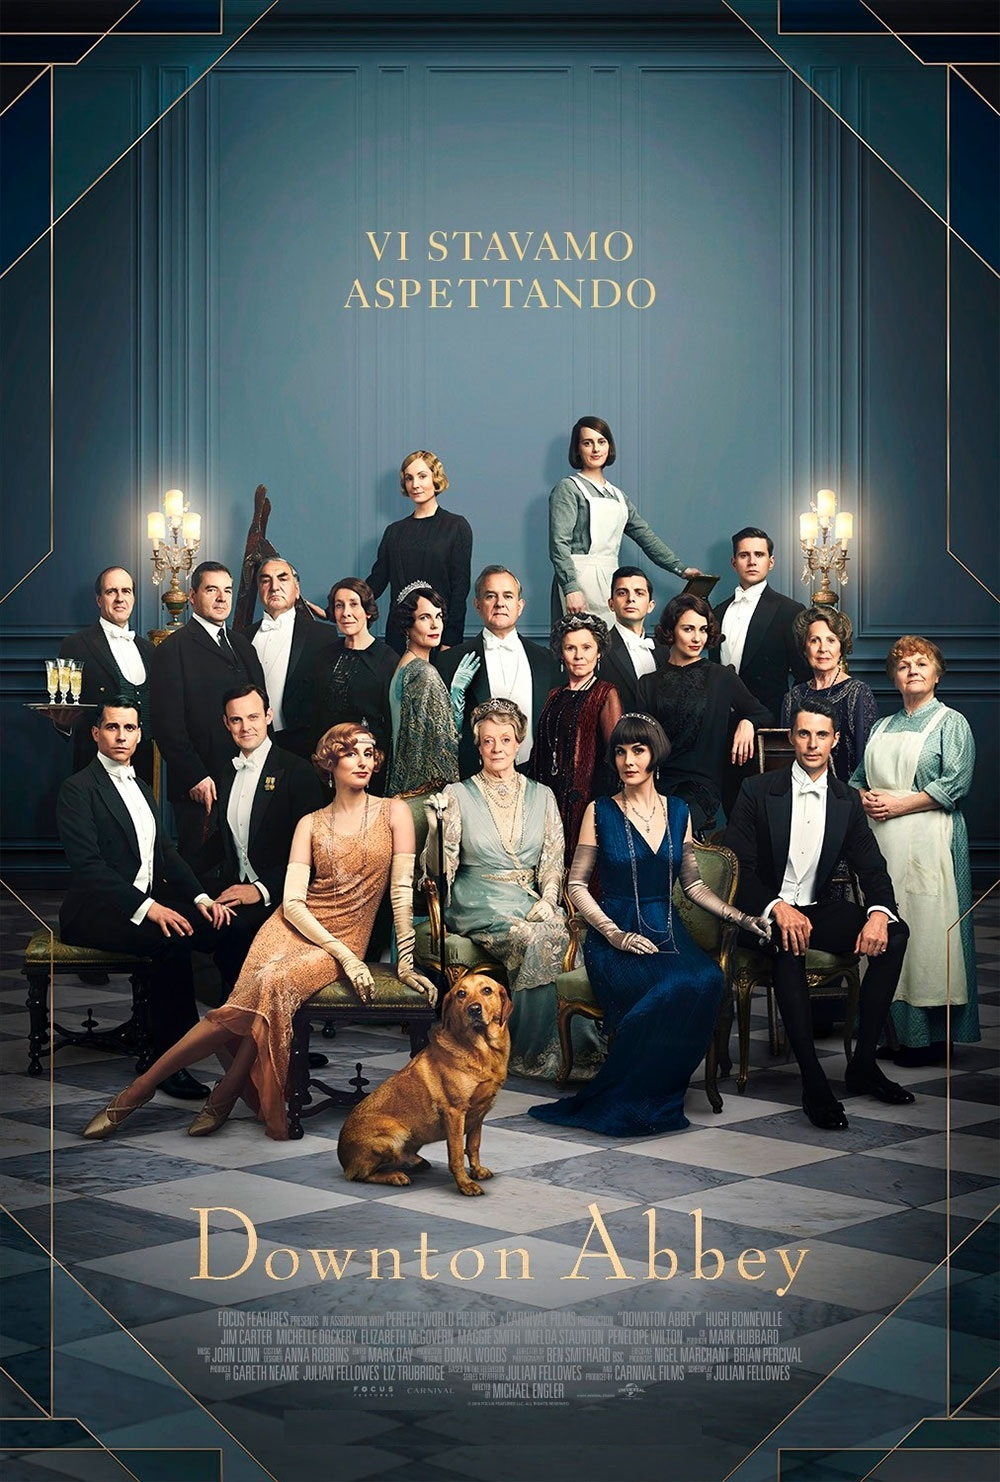 DOWNTON ABBEY giovedì 7, sabato 9: ore 21:15  domenica 10: ore 16:30 - 18:30 #DowntonAbbeyIlFilm